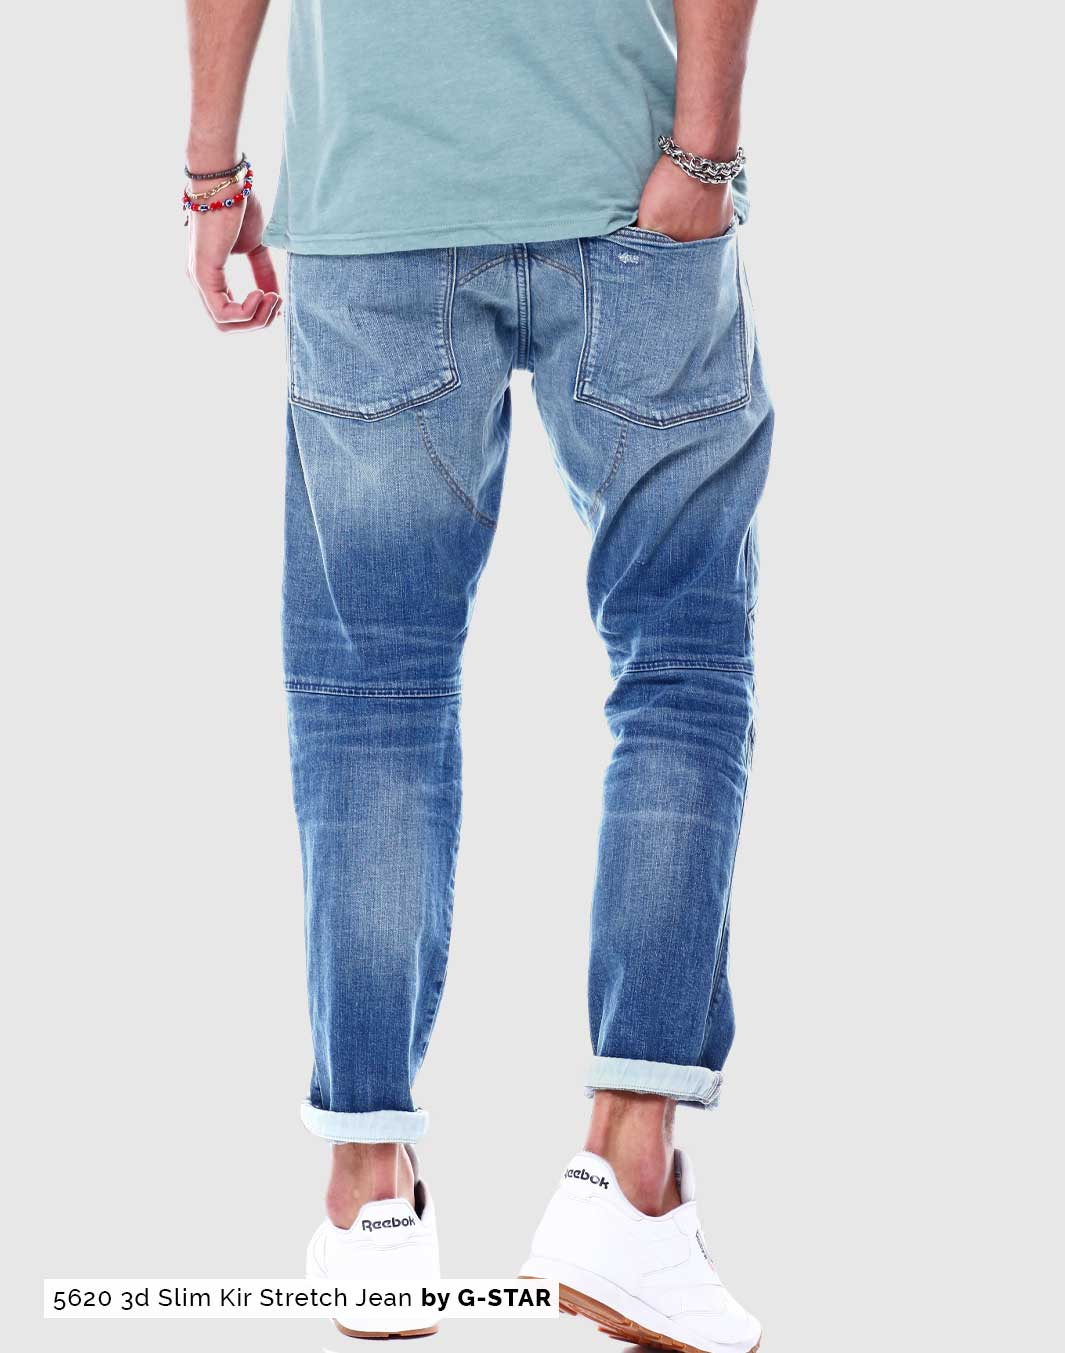 Jeans for Men at DrJays.com